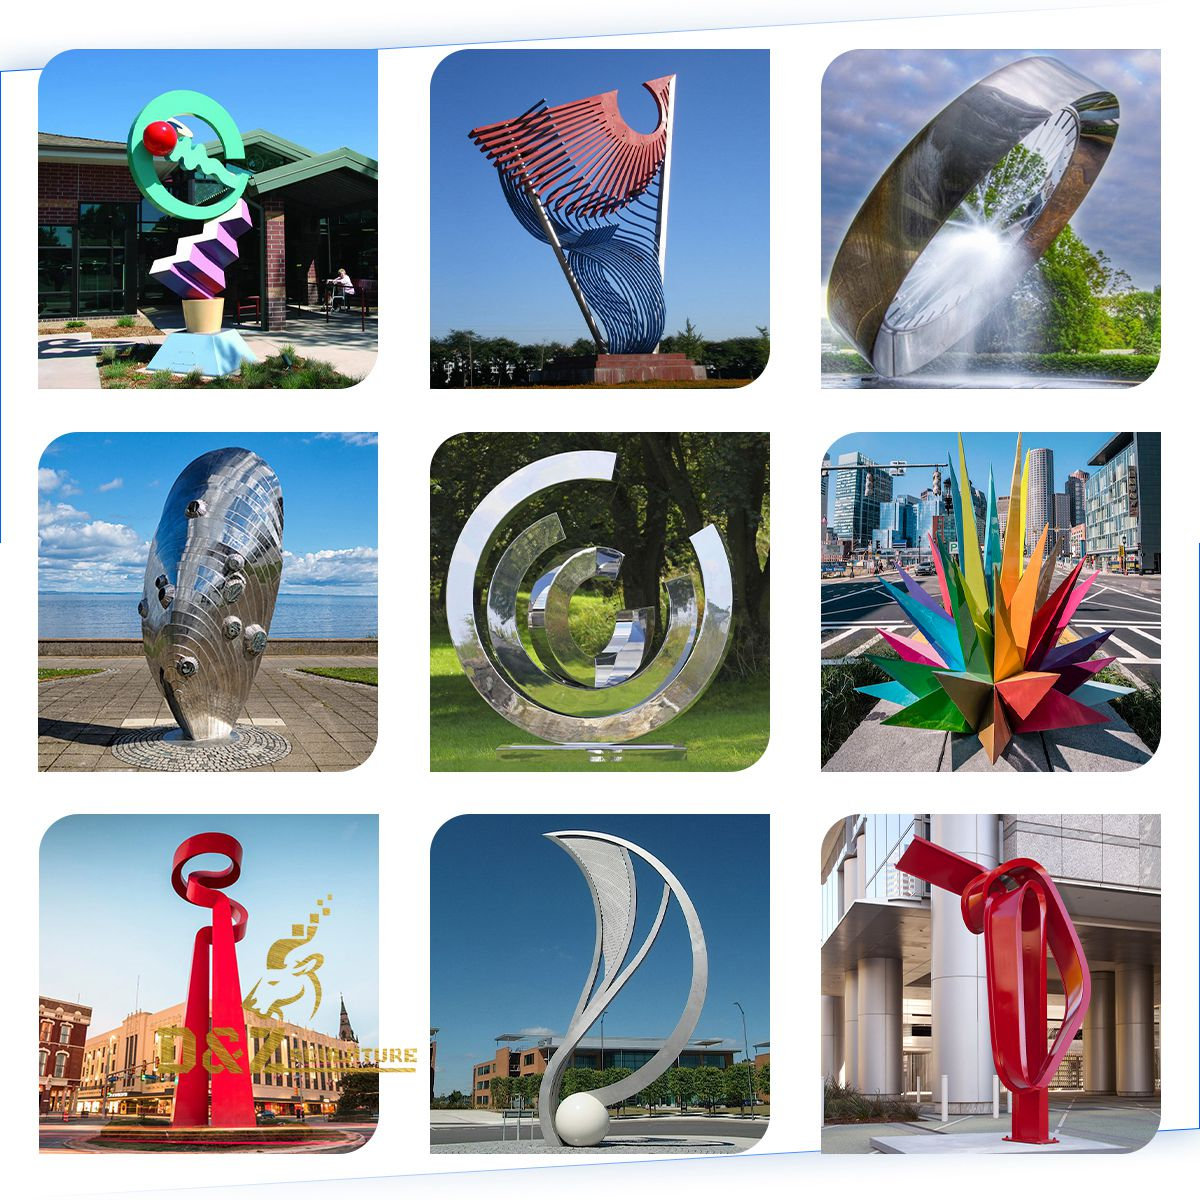 Stainless steel colorful sculptures